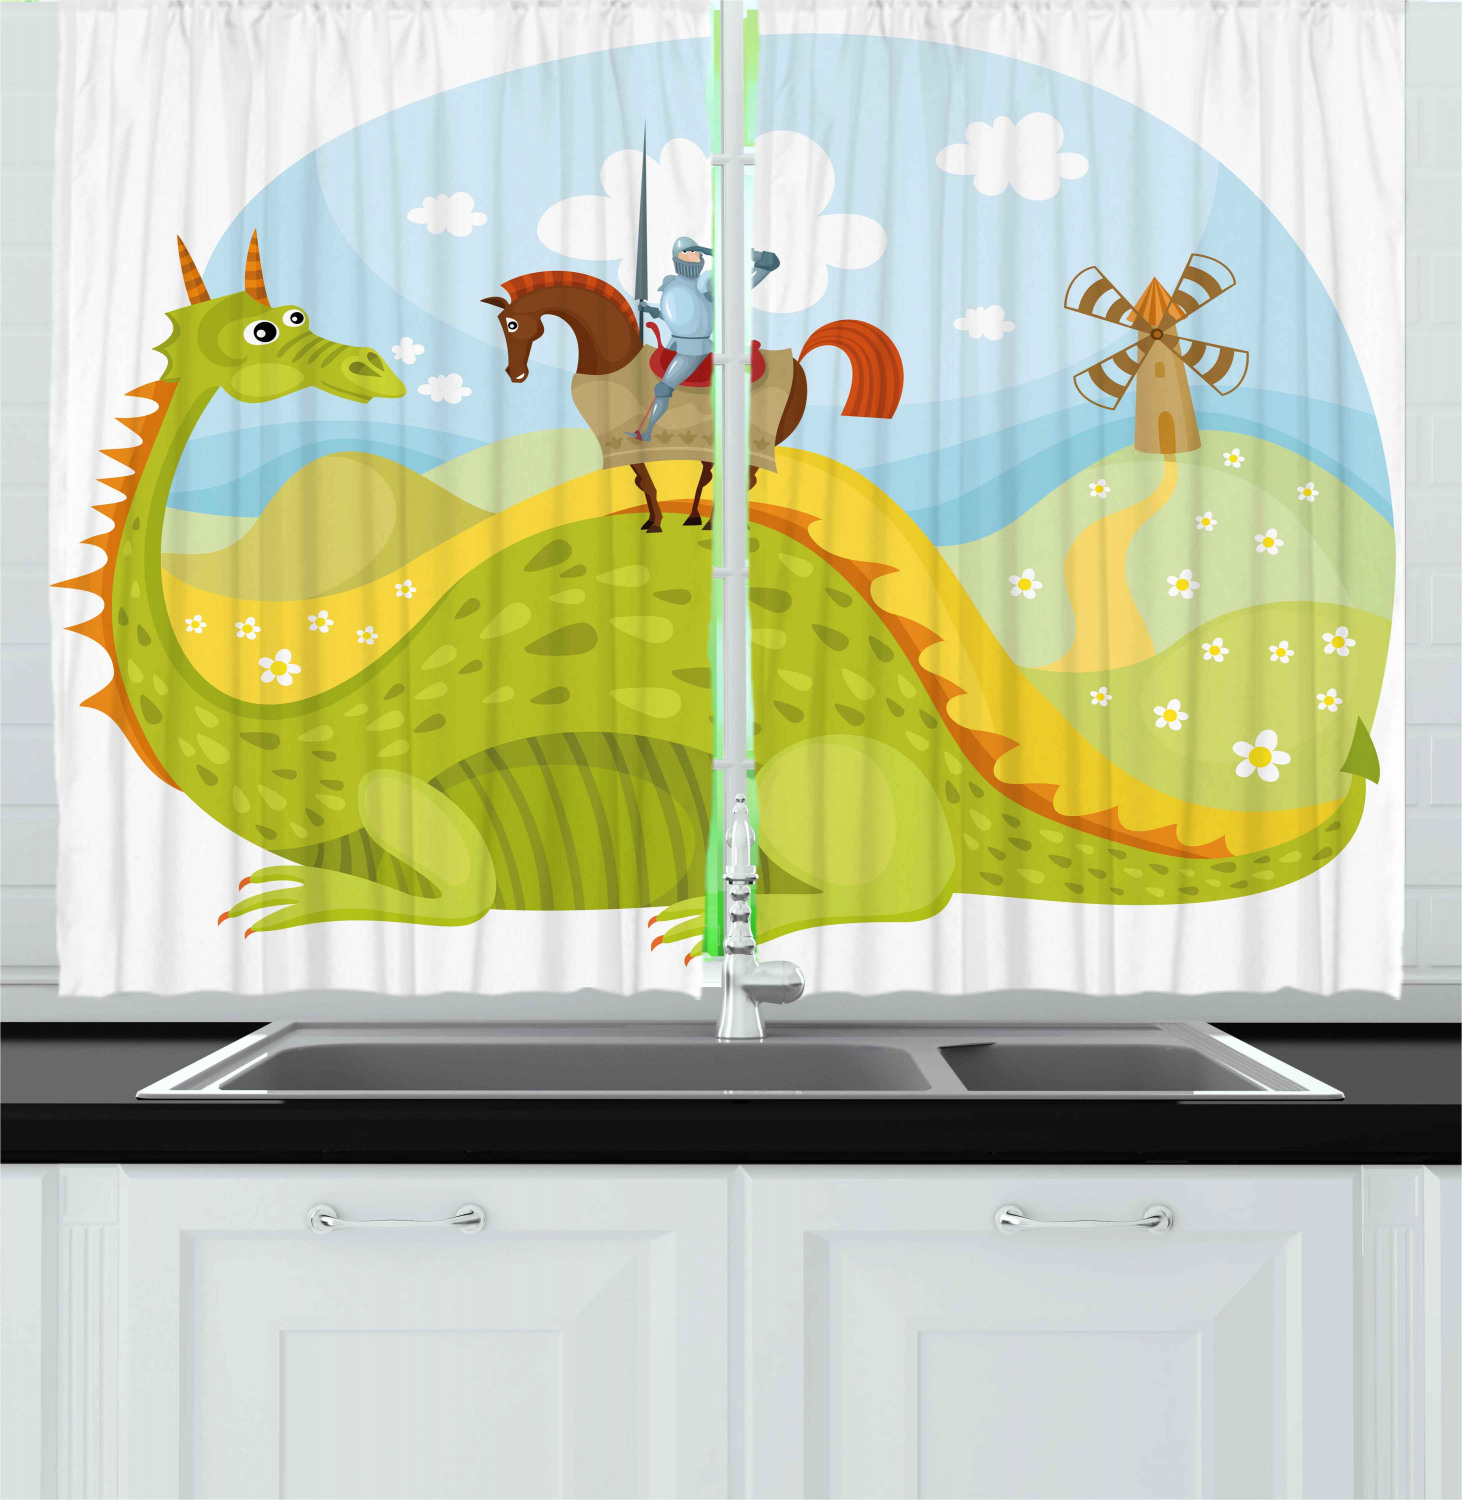 Fantasy Curtains 2 Panels Set Knight Don Quixote With Horse On Dragon Valley Medieval Fairytale Image Window Drapes For Living Room Bedroom 55w X 39l Inches Apple Green Sky Blue By Ambesonne